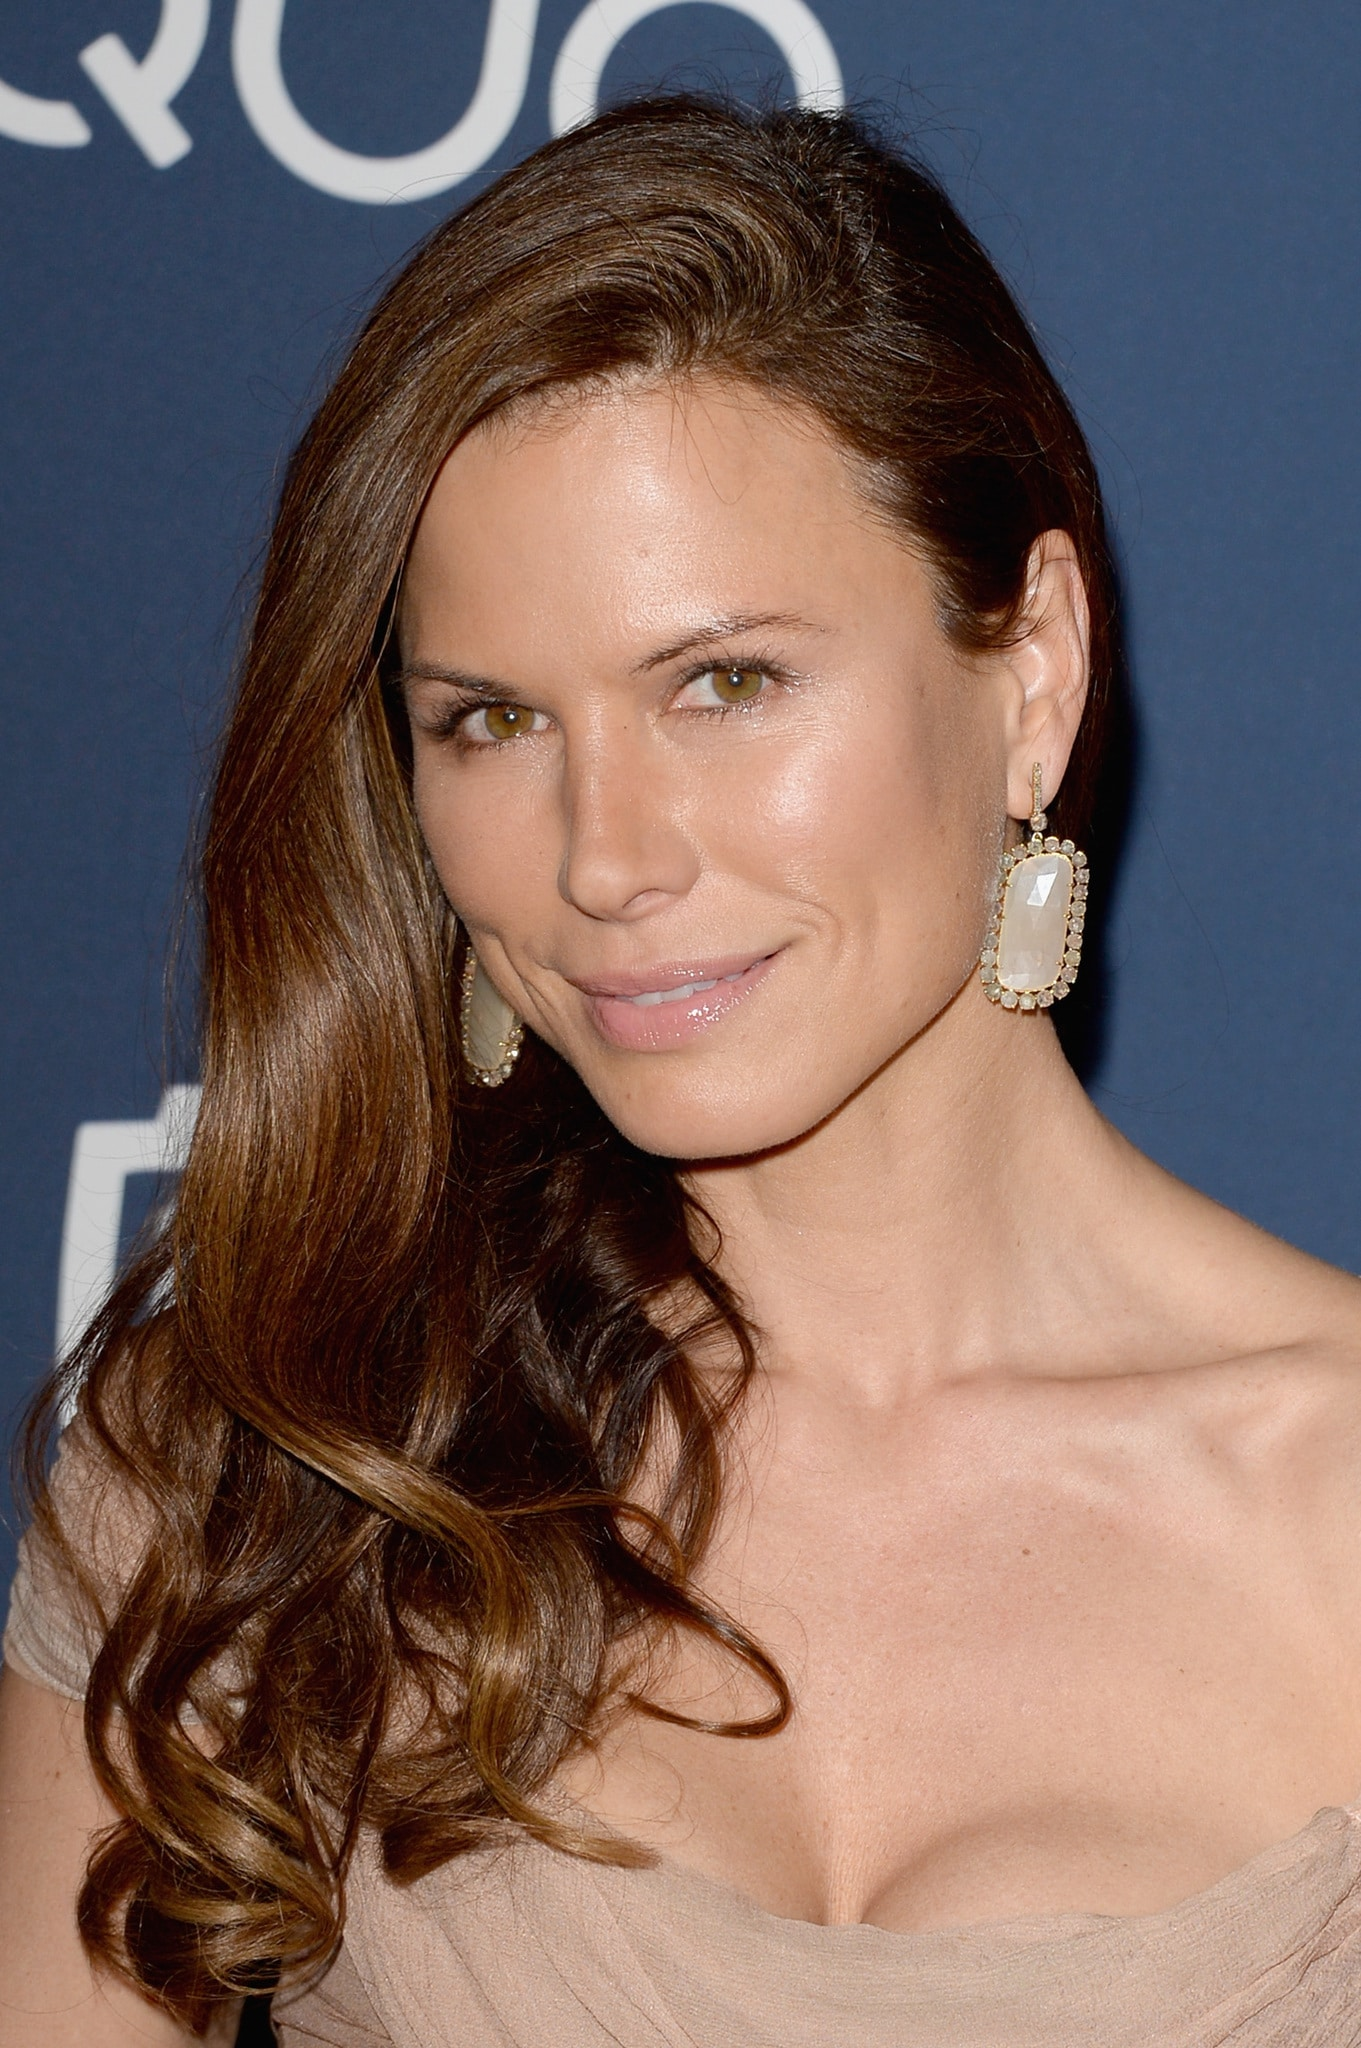 Rhona Mitra British Actress, Model, Singer, Songwriter